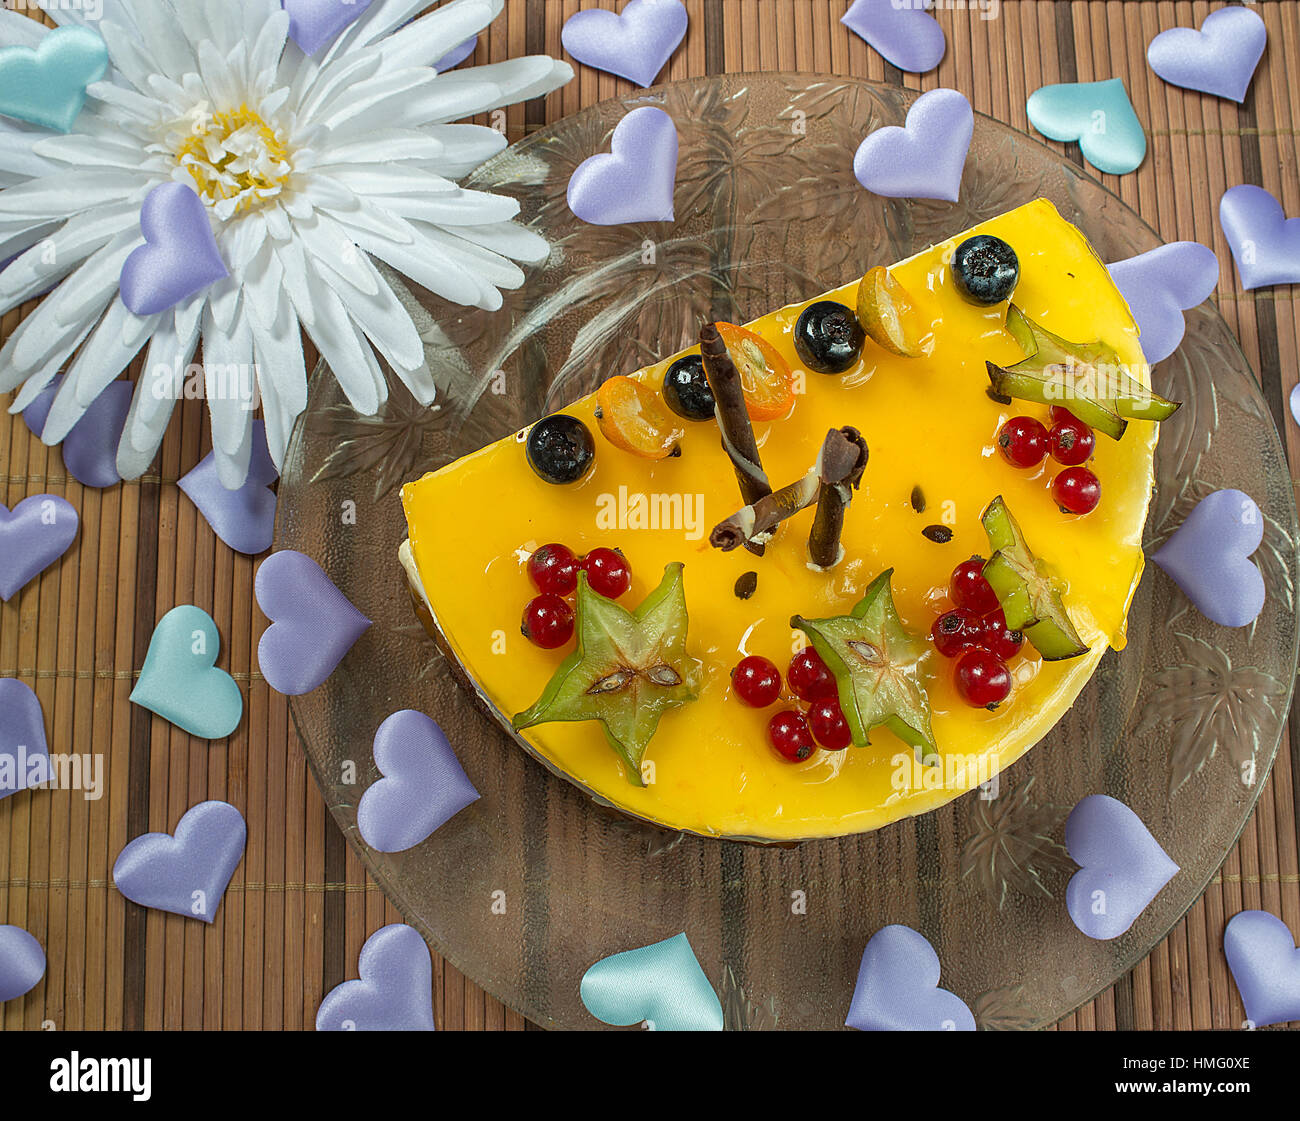 Valentine's cheesecake with berries and the hearts - Stock Image